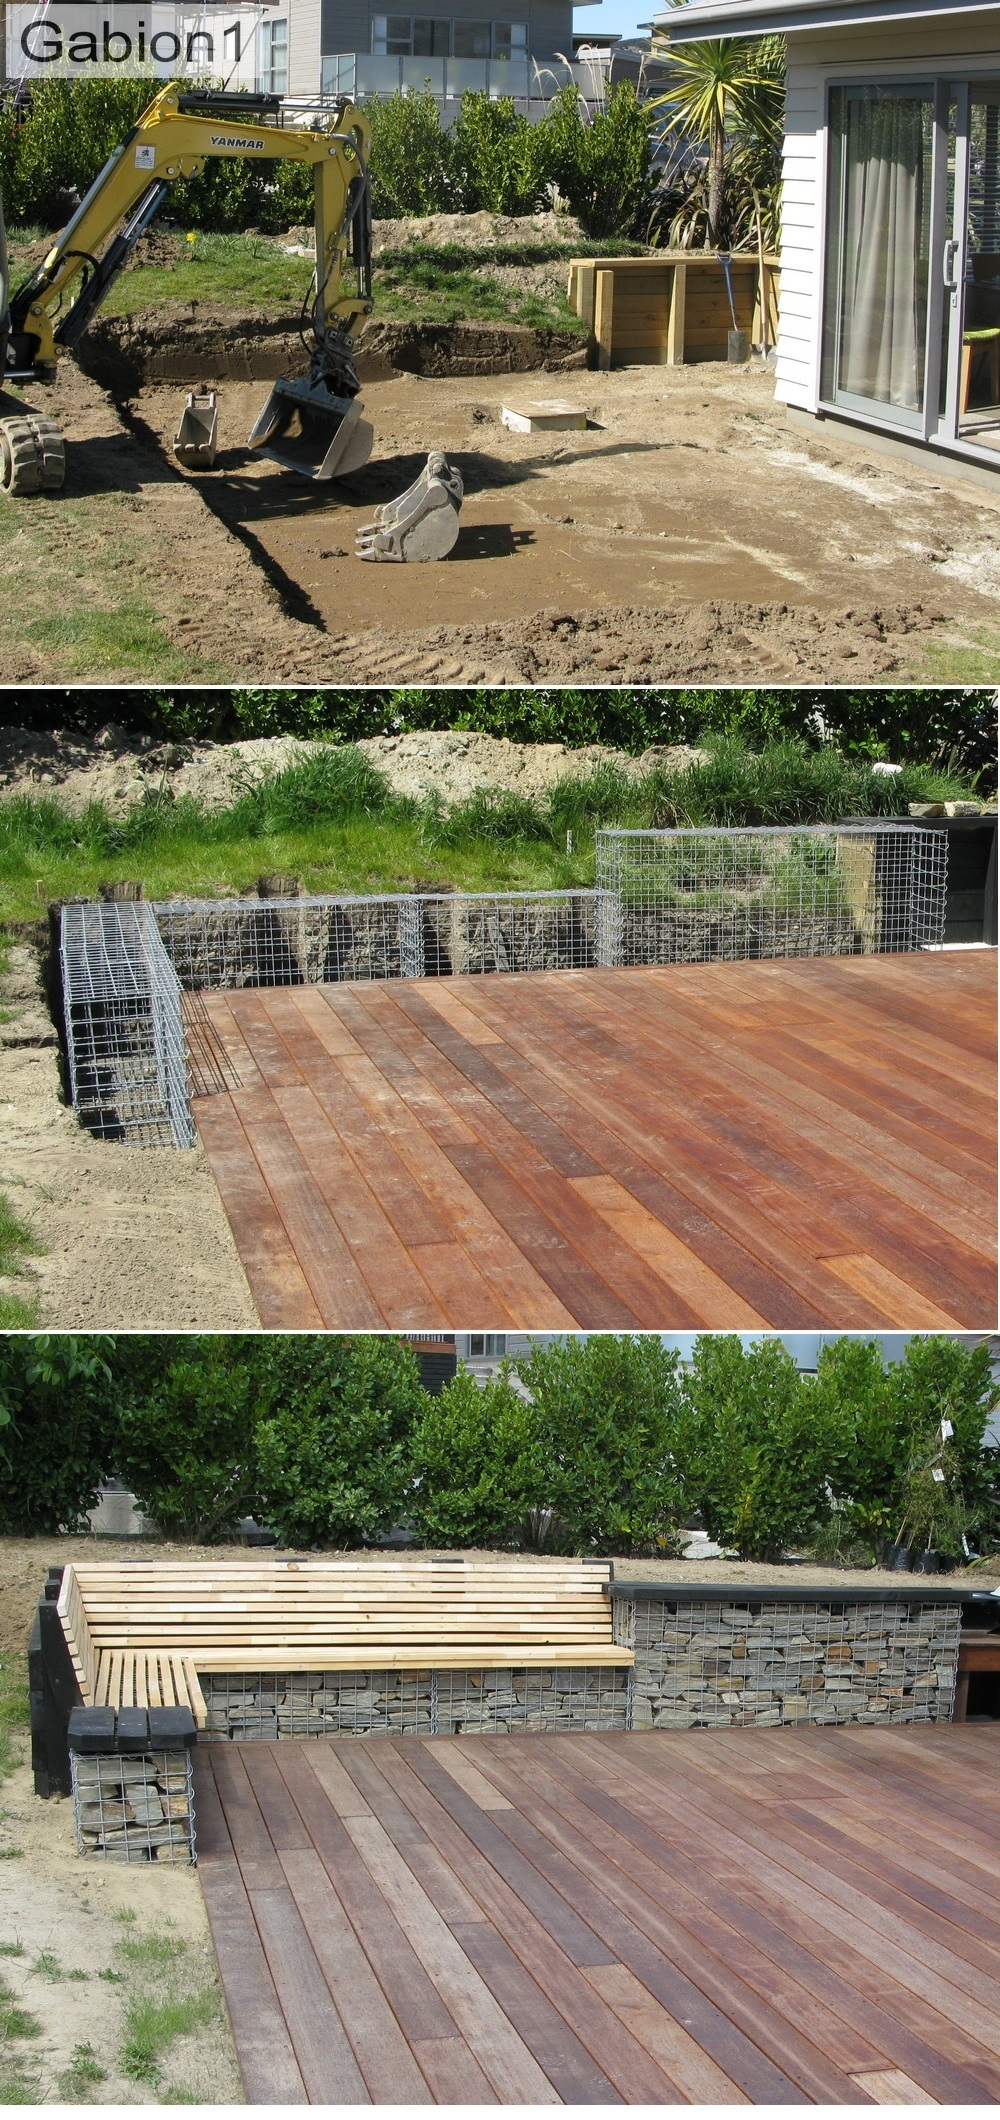 gabion deck seat construction